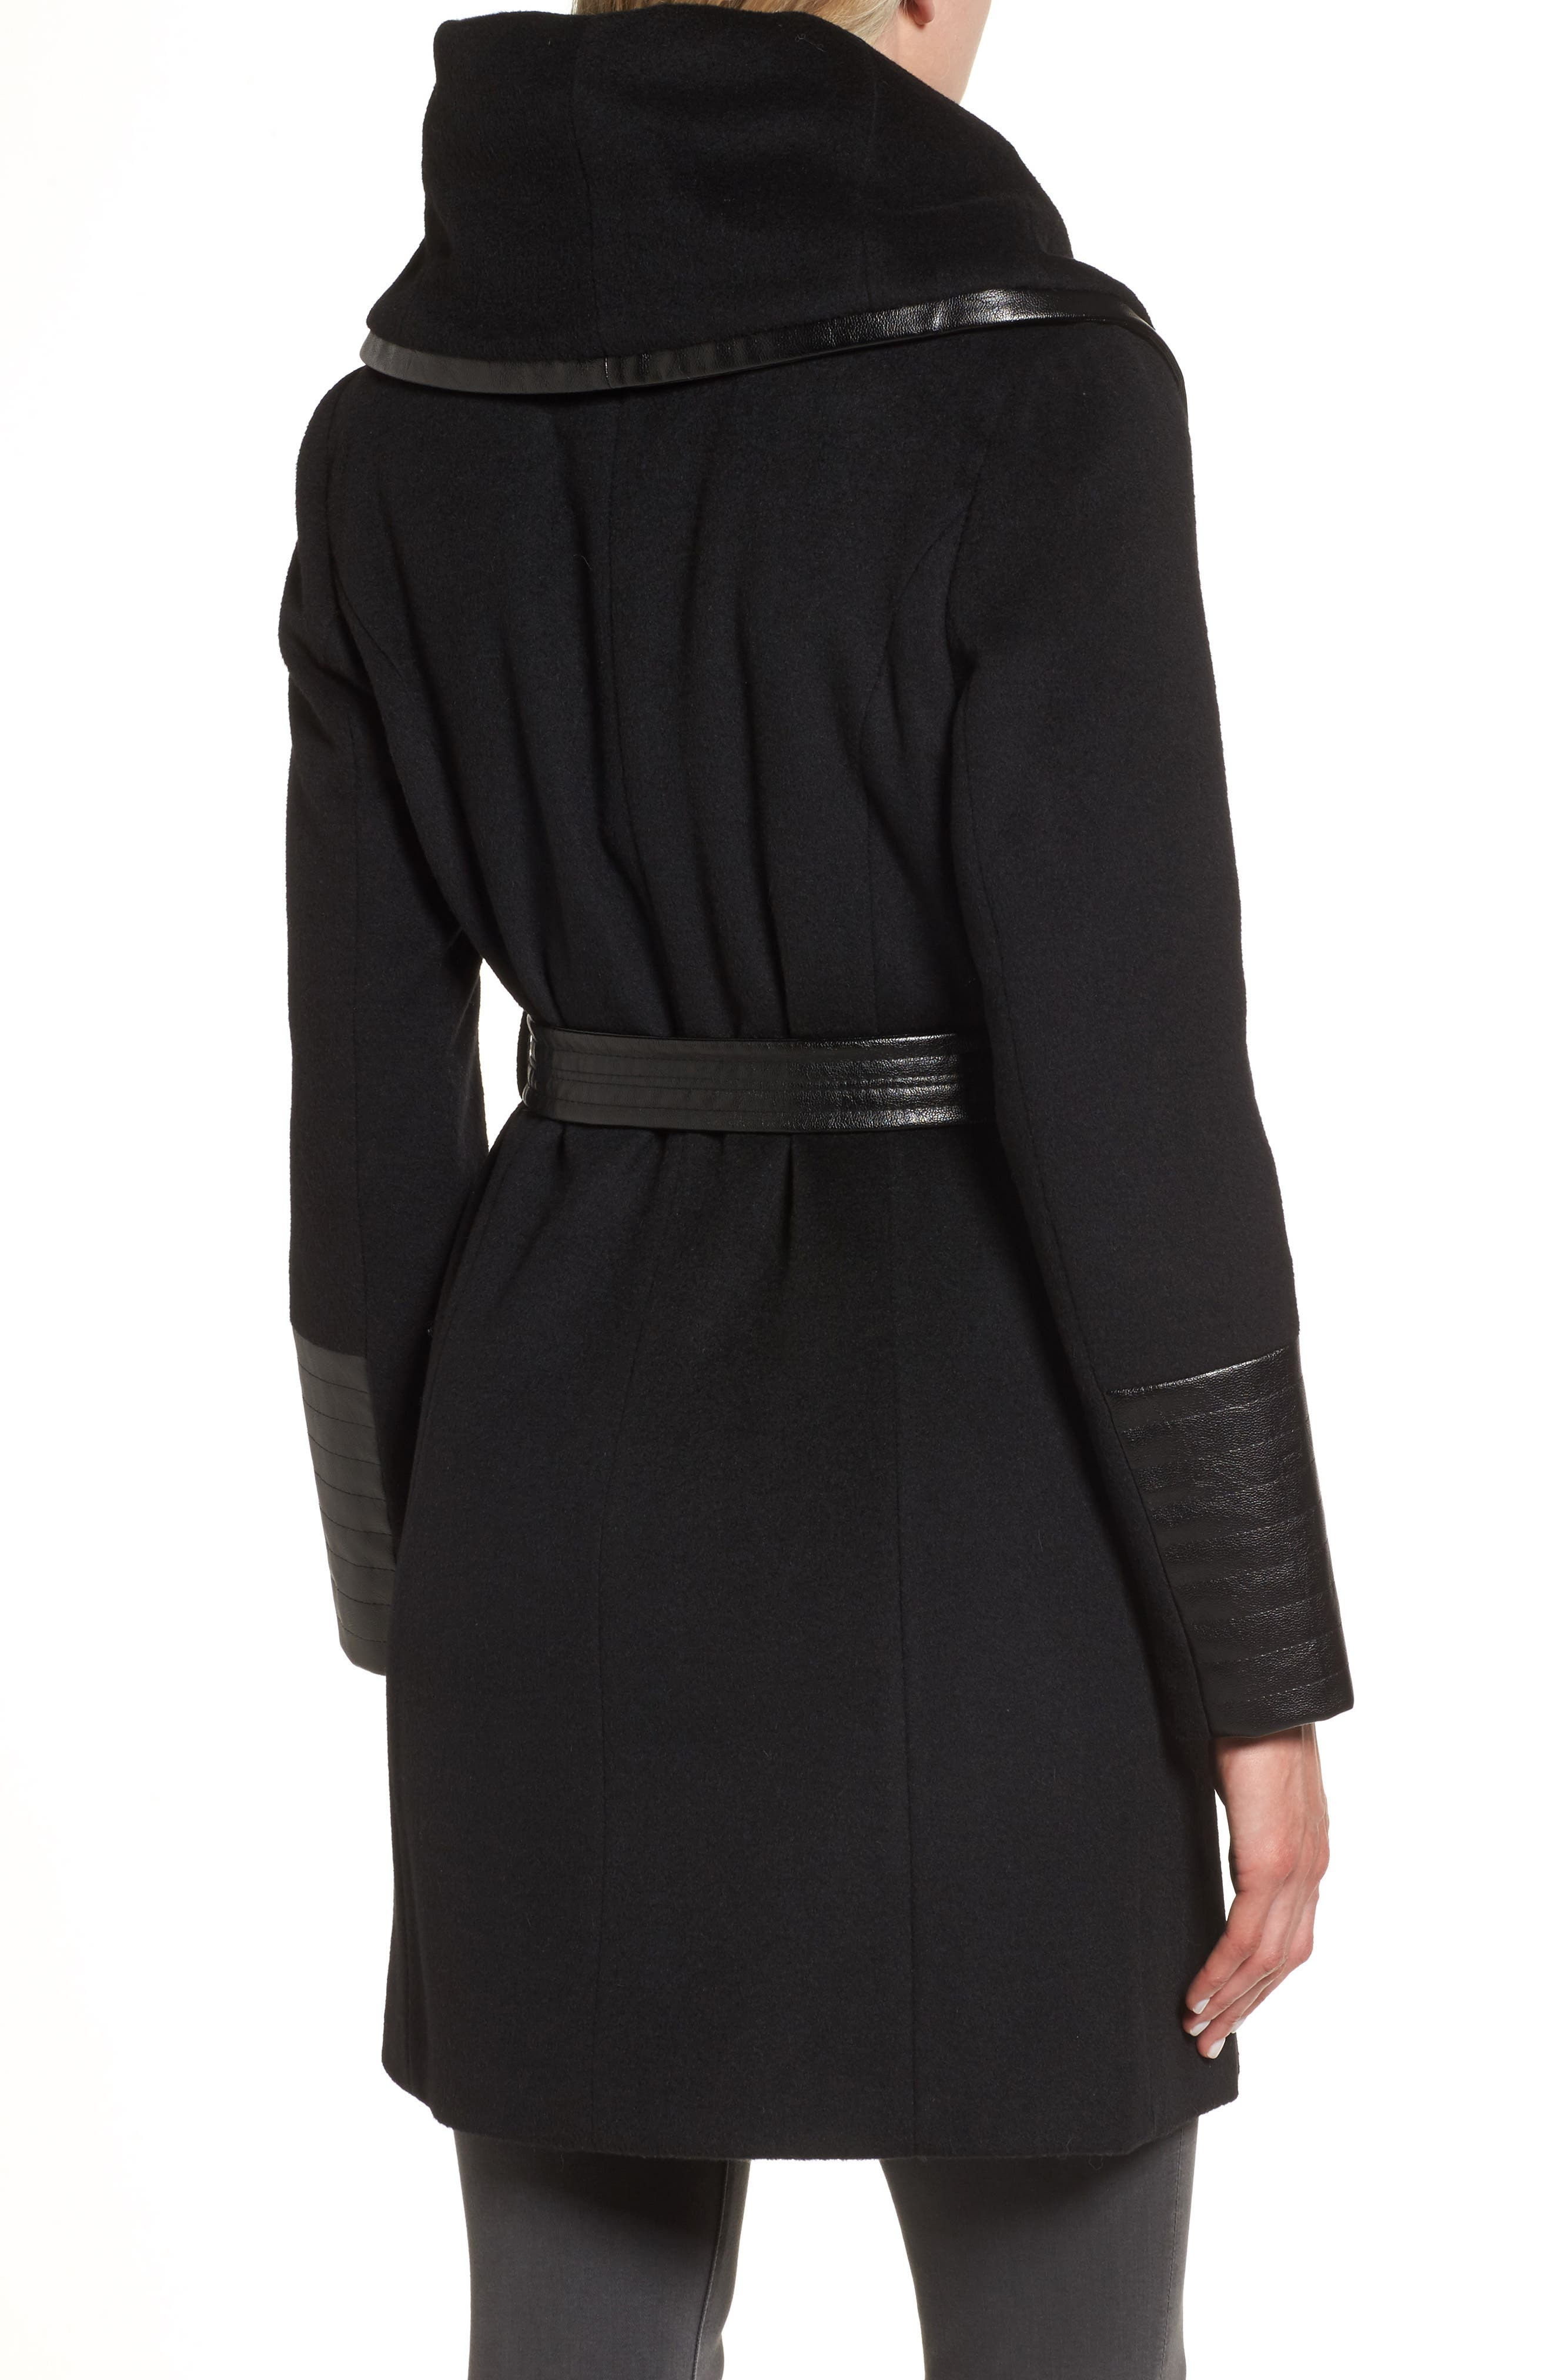 Wool Blend Coat,                             Alternate thumbnail 2, color,                             Black